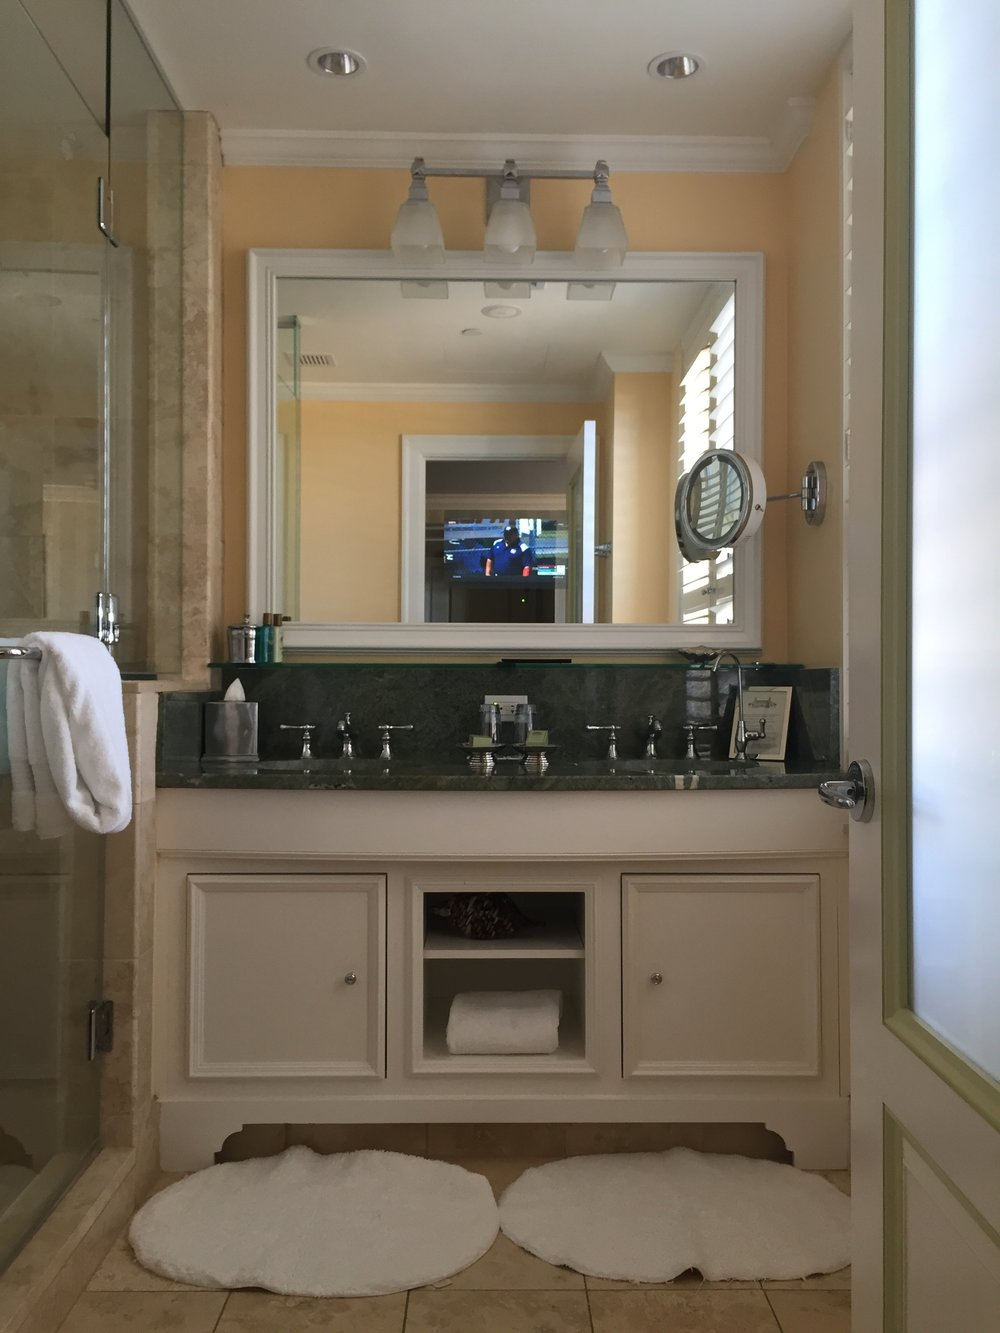 thebreakers-travel-review-bathroom.jpg